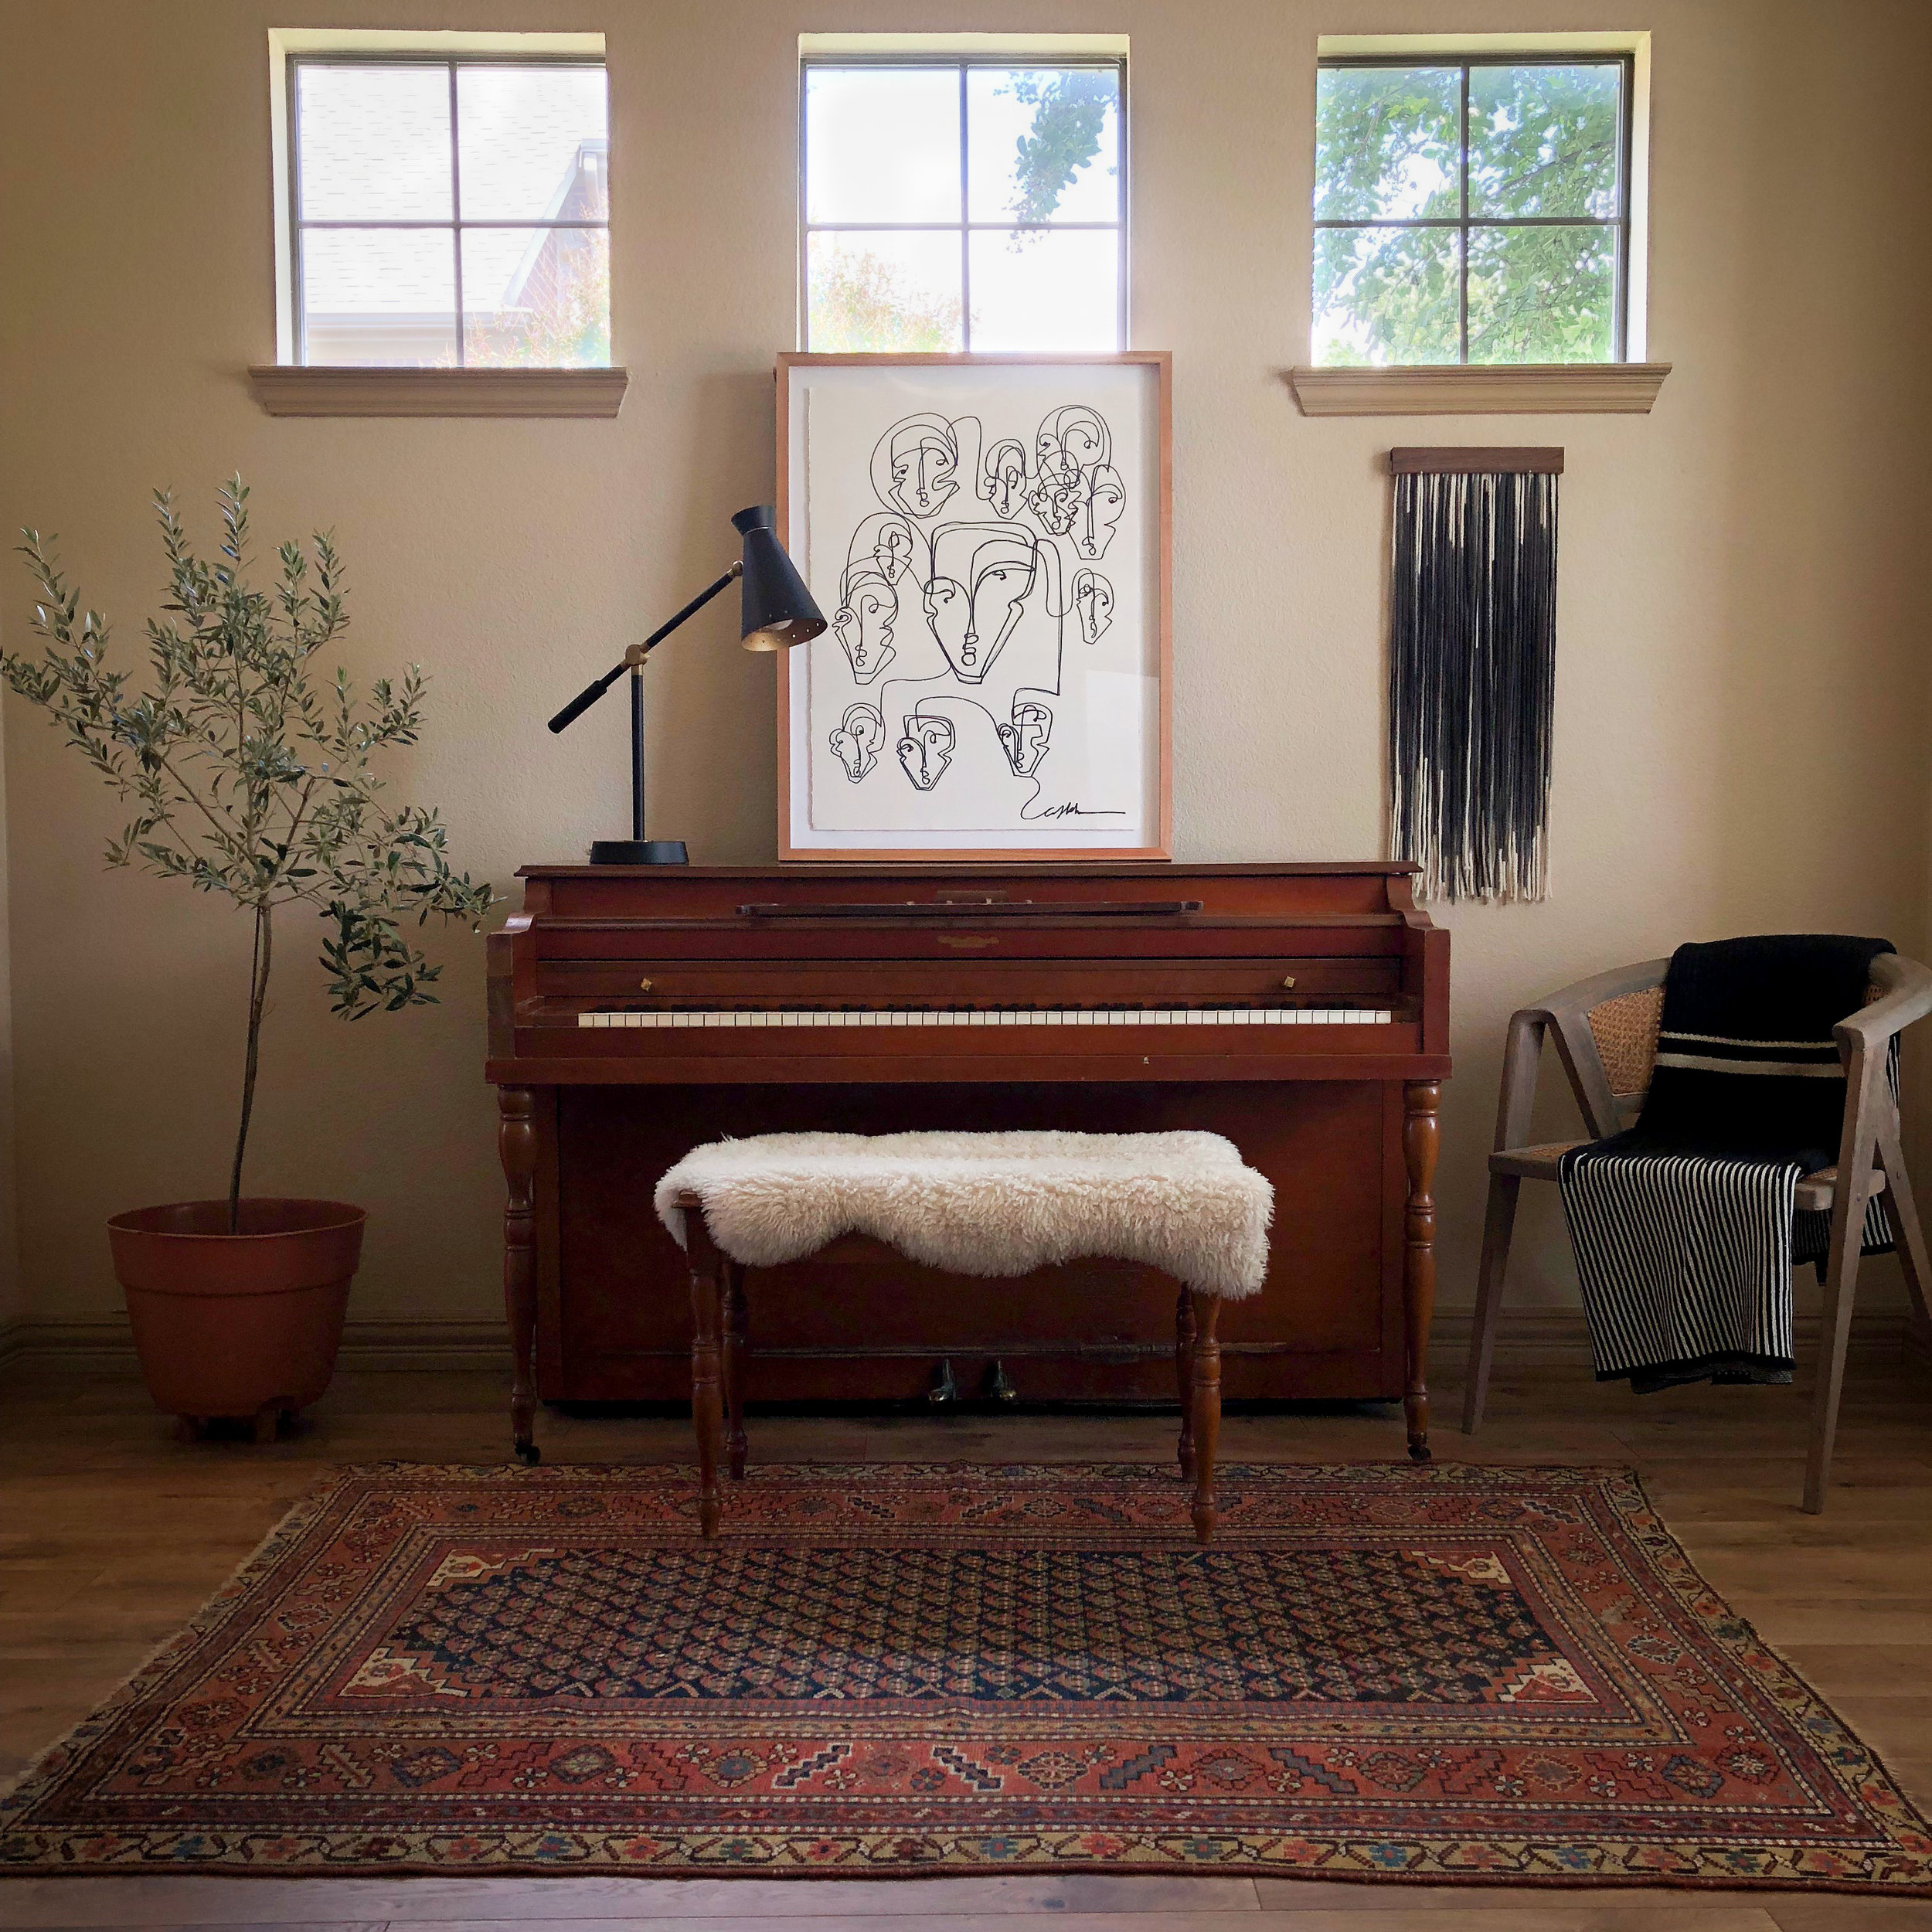 Mini Tapestry paired with framed art by Carly Kuhn of @thecartorialist in Lauren's family piano room. Vintage upright piano and bench found on Craigslist. Vintage rug from Jean Palmer Home. Chair with Lauren Williams + Ditto House tapestry-inspired cotton knit throw available online: https://www.laurenwilliamsart.com/store